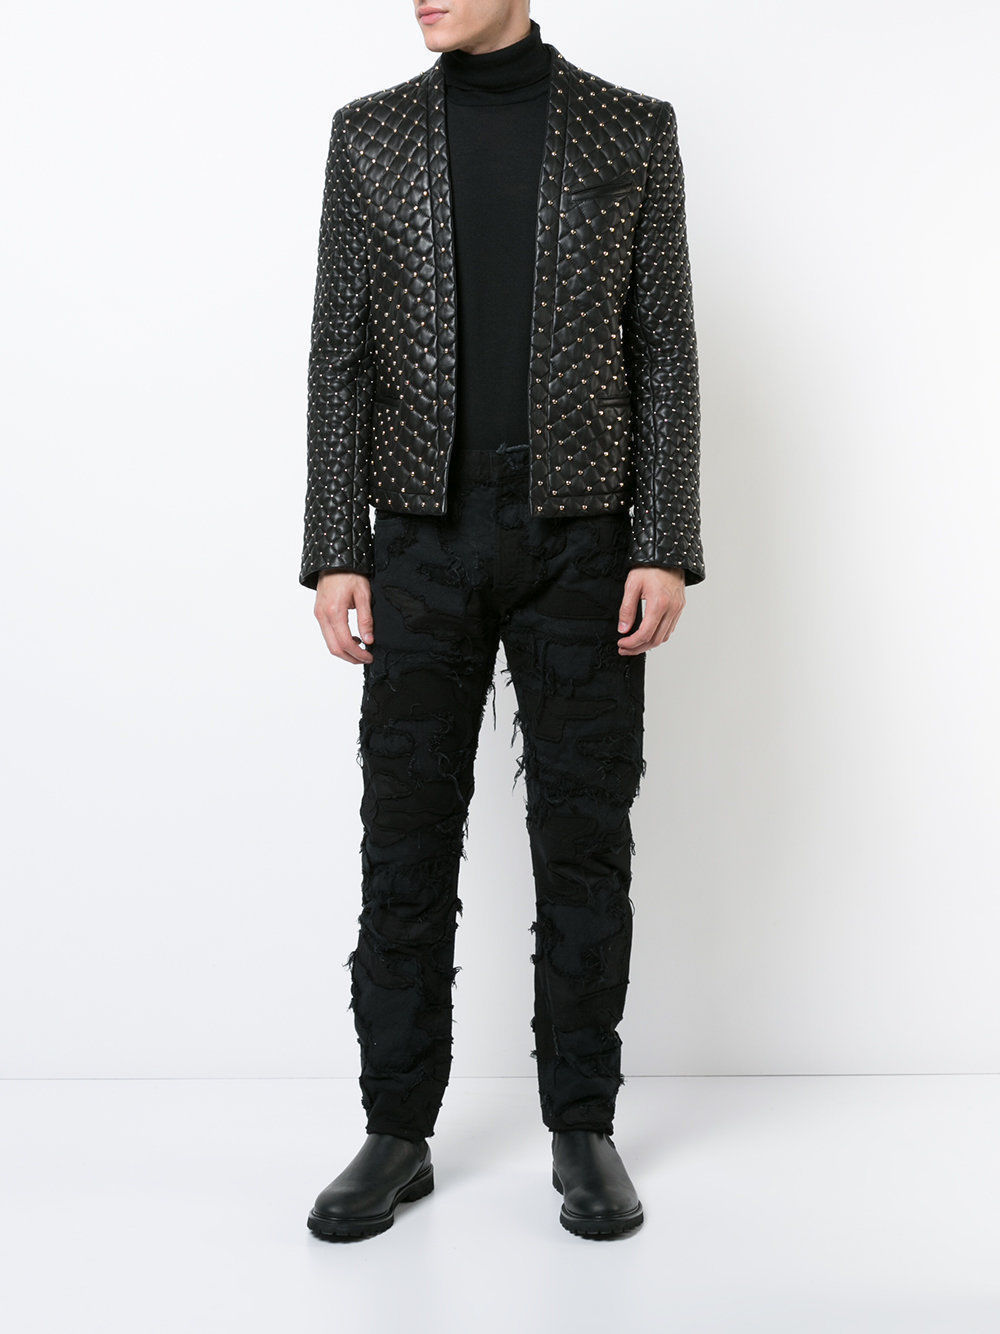 Handmade Balmain Fashion Black Quilted Studded Leather Sport Coat